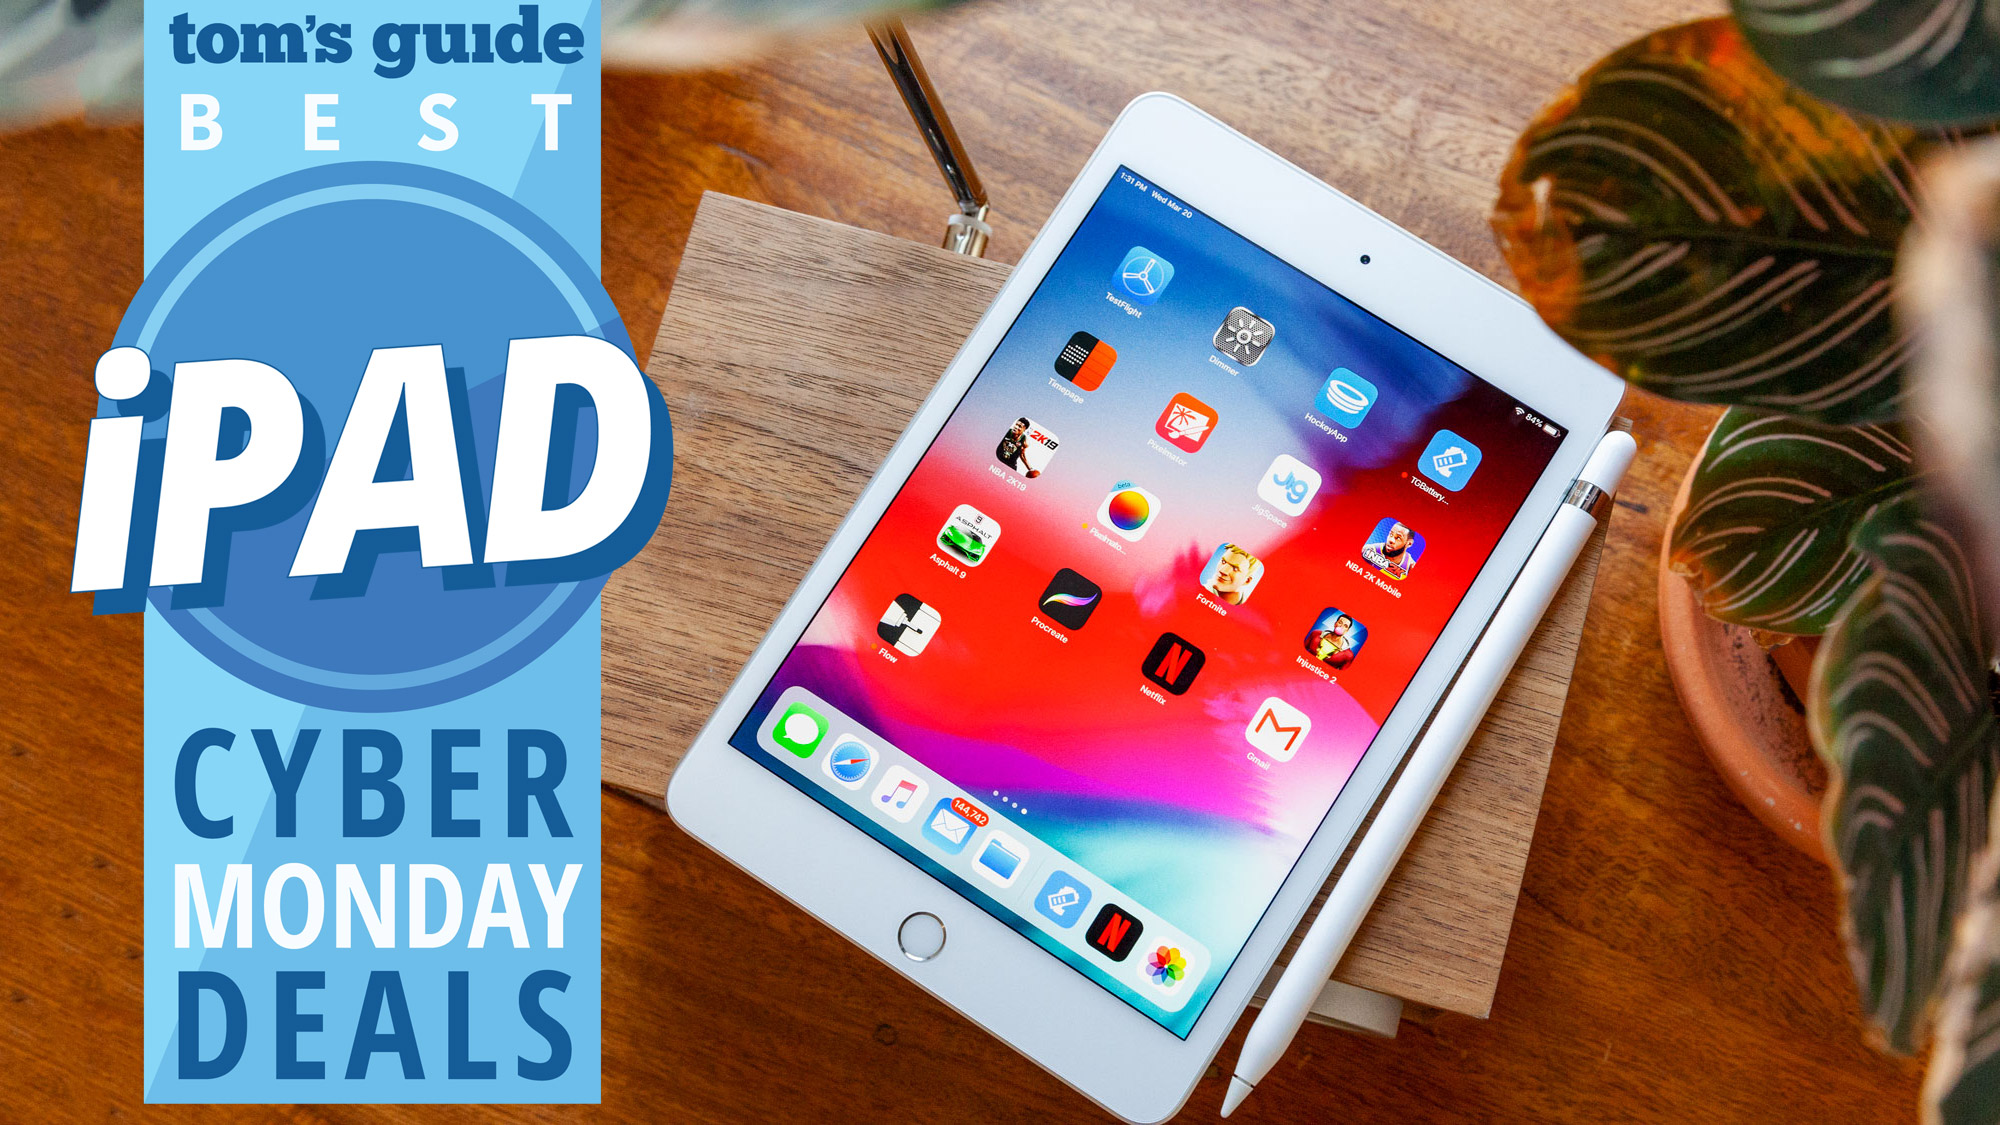 Best Ipad Deals For Cyber Monday Top Deals You Can Still Get Tom S Guide